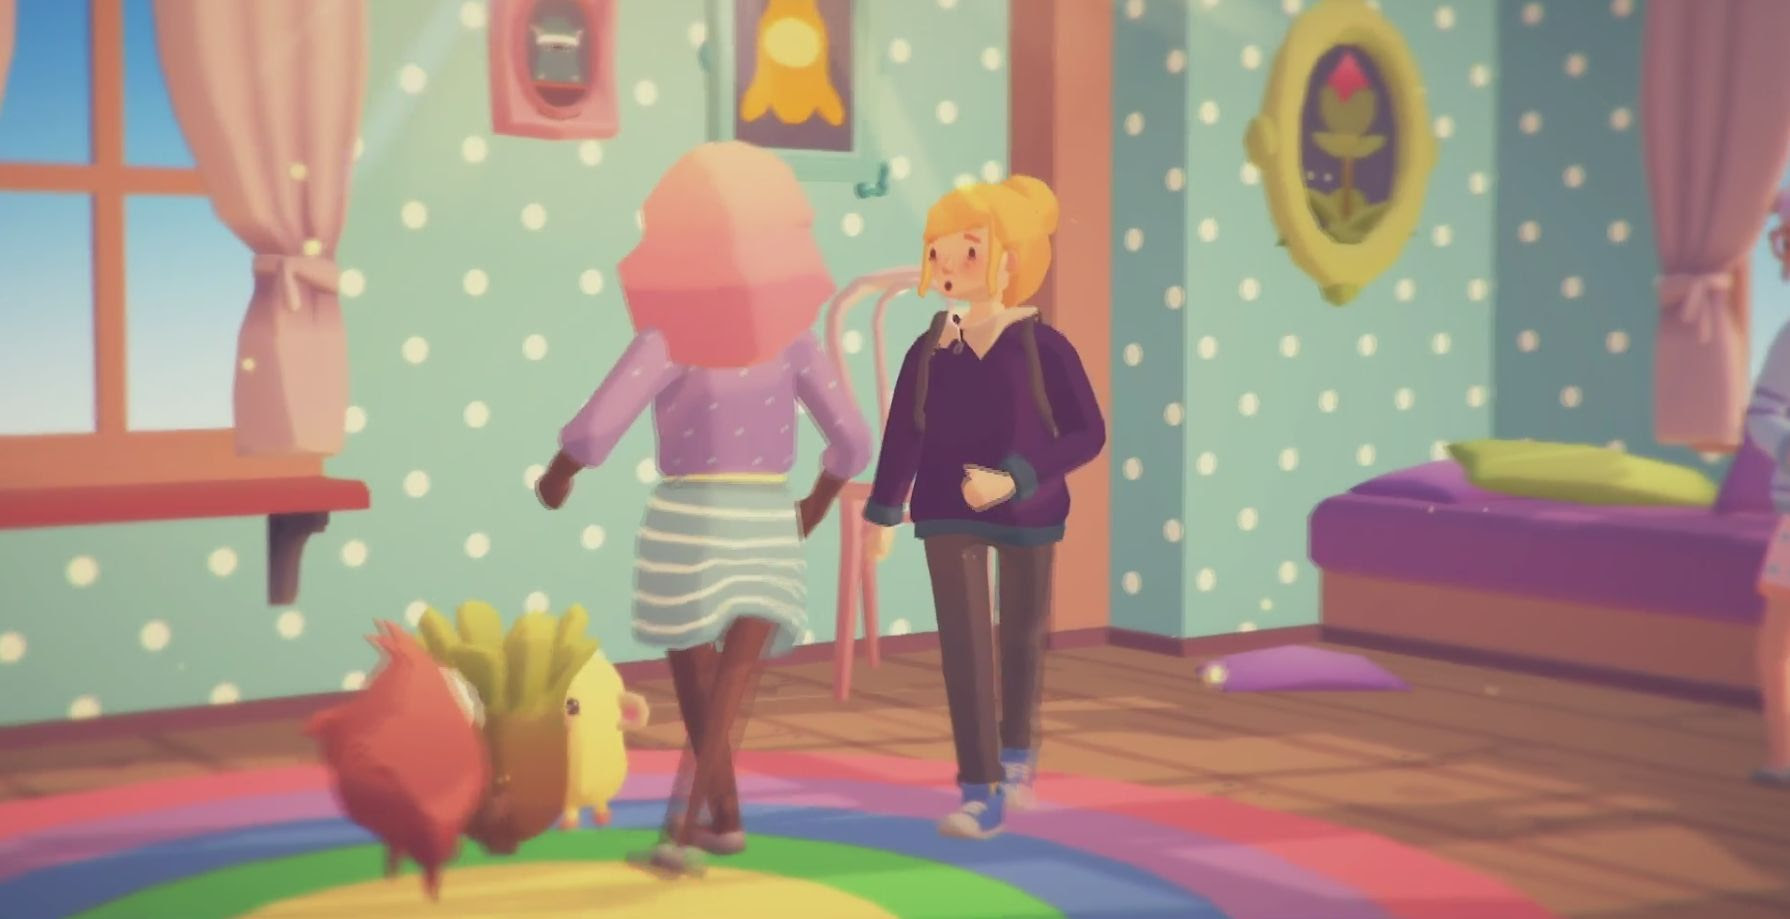 Ooblets' cute style reminds me of Katamari Damacy screenshot